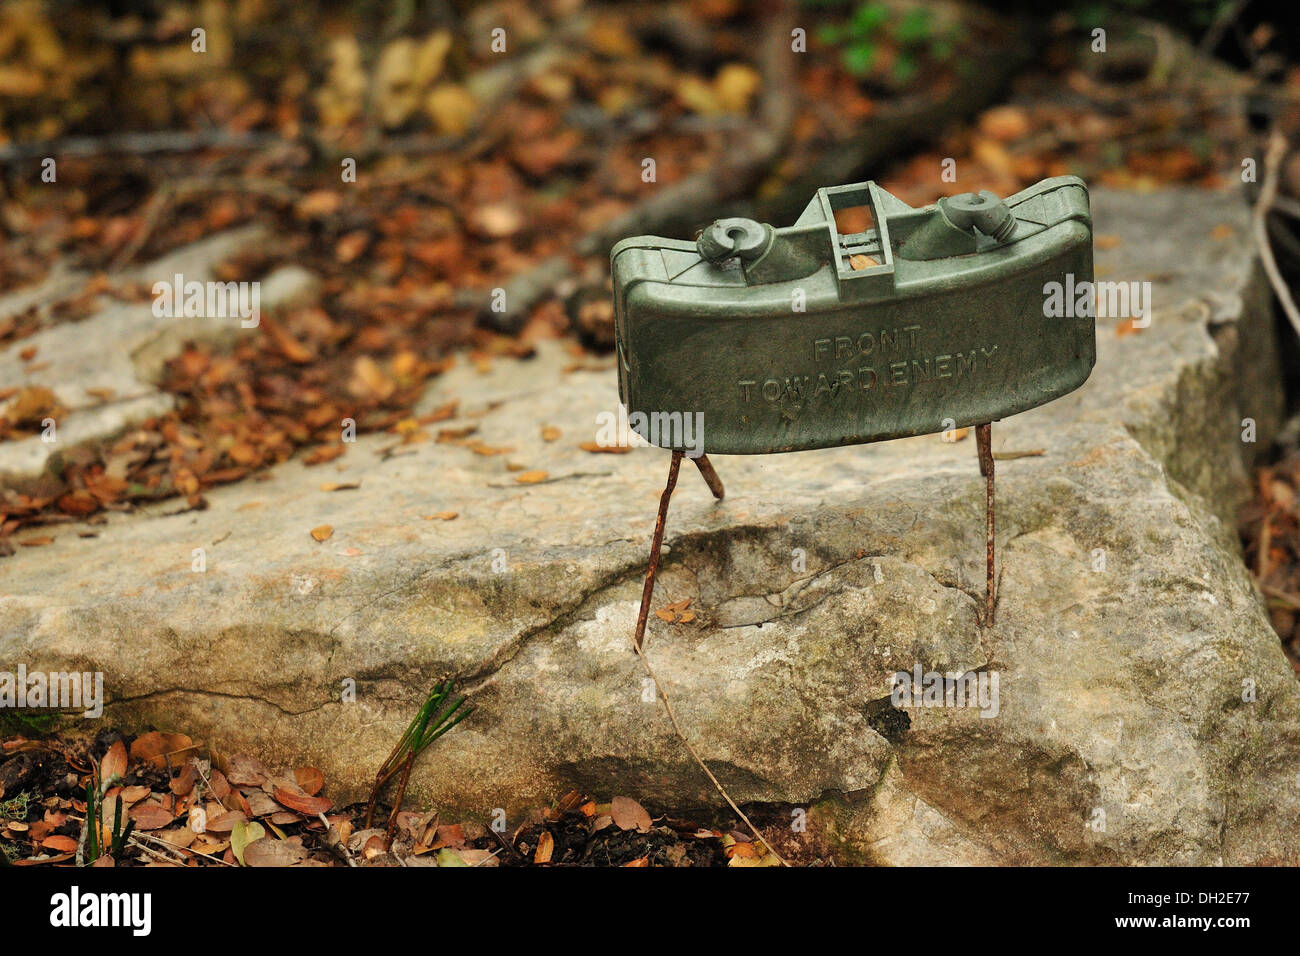 The M18A1 Claymore is a directional anti-personnel mine used by the U.S. military., Mleeta, Hezbollah Museum, South Lebanon - Stock Image